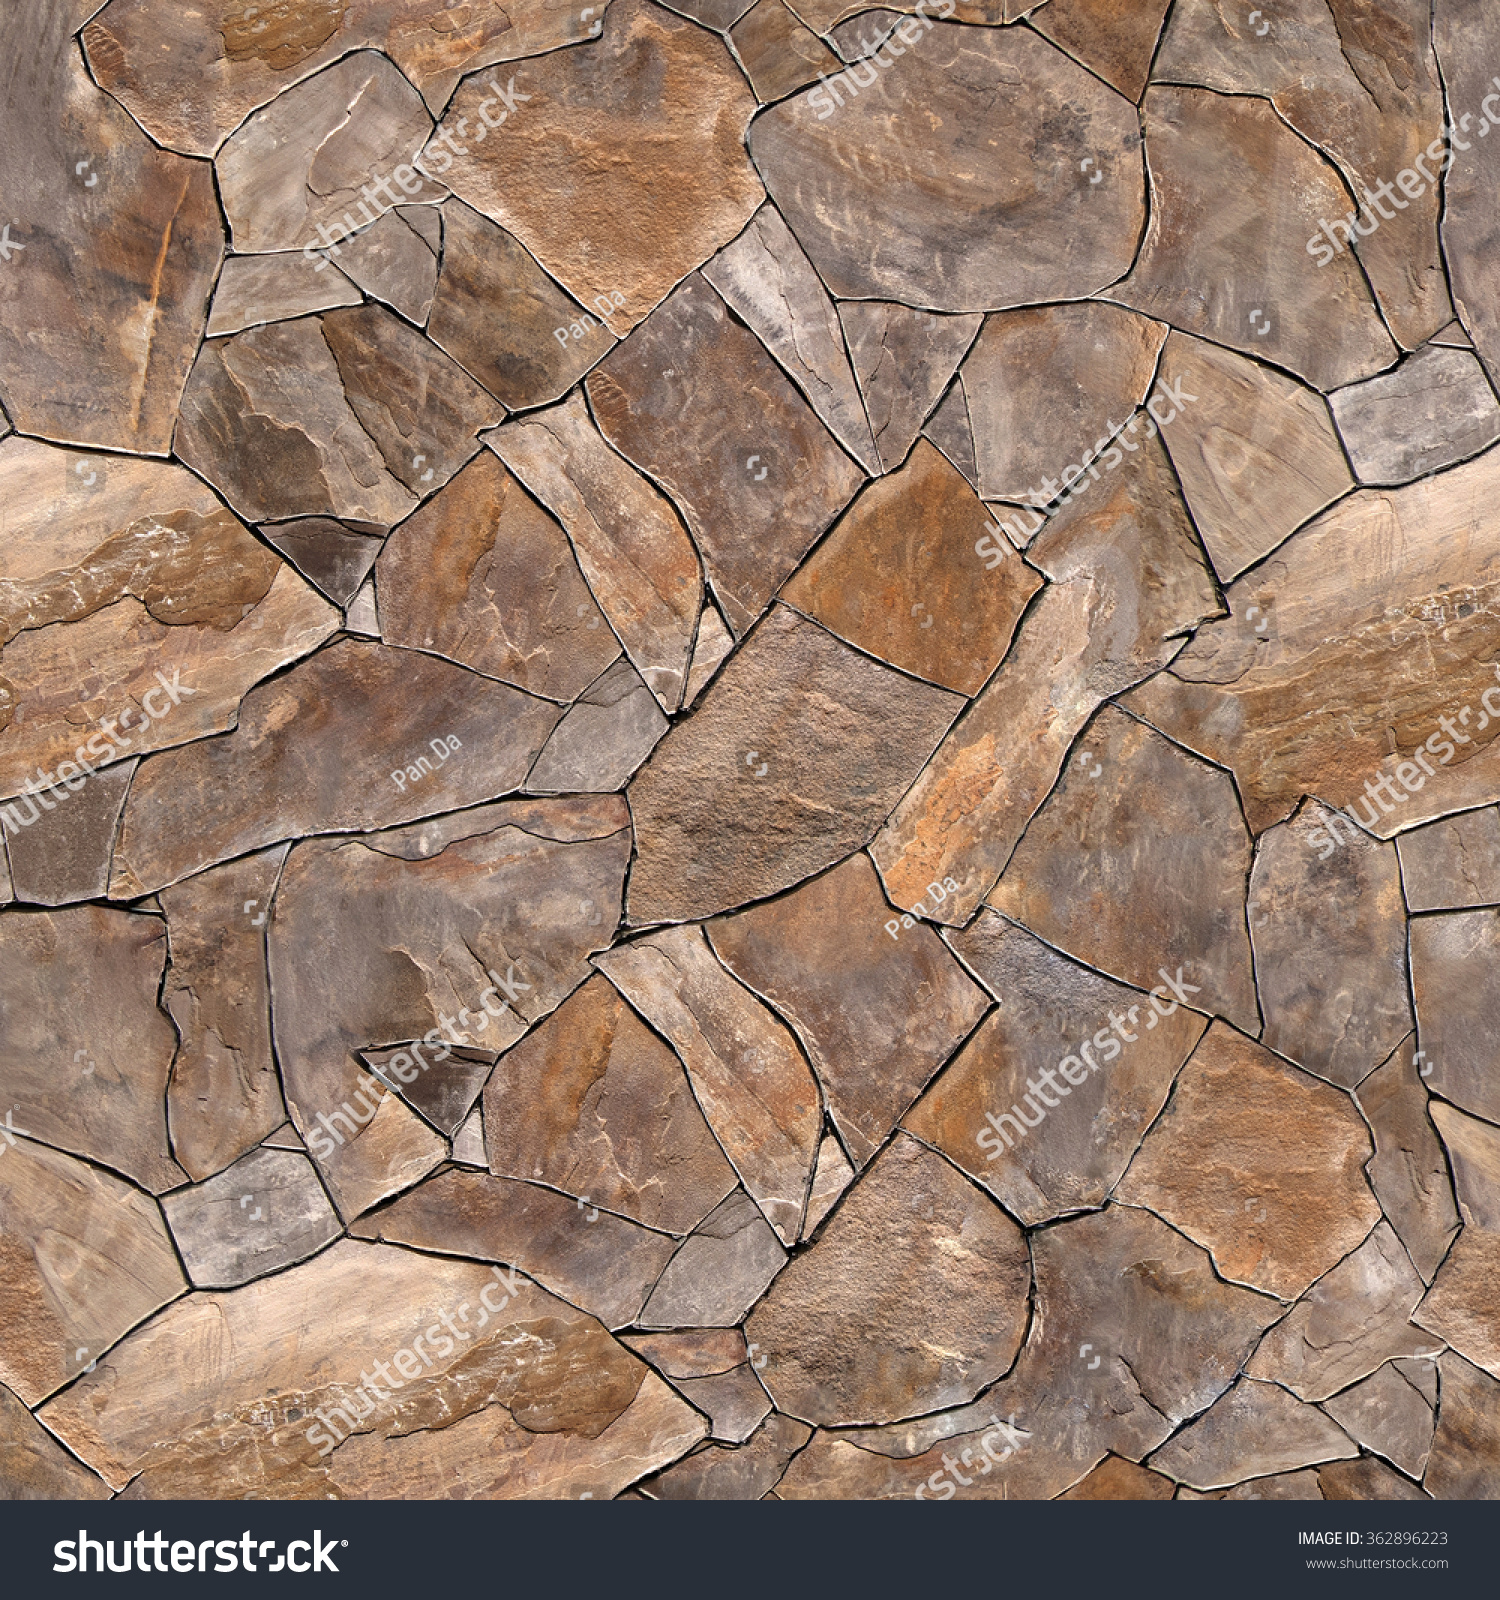 Natural Stone Texture : The gallery for gt natural stone flooring texture